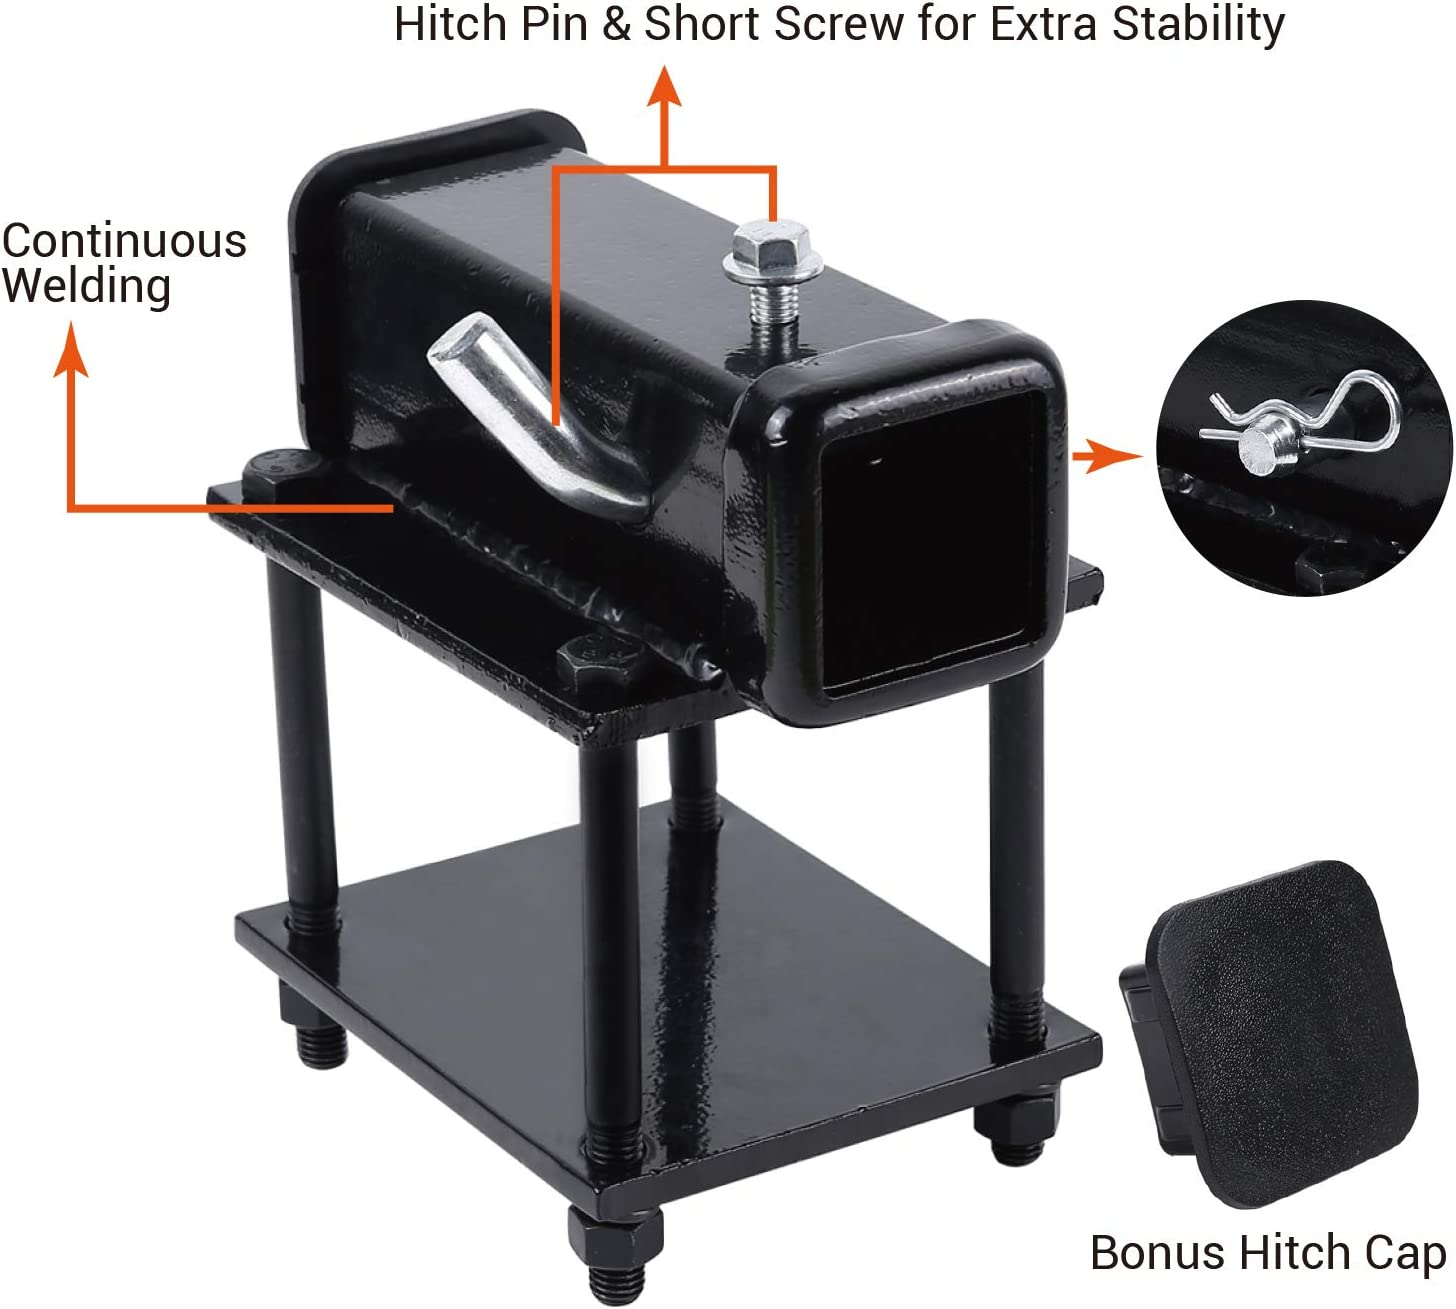 Ohuhu Bolt-on RV Bumper Hitch Receiver Adapter Fits 4-4.5 Beam 2 Receiver with Hitch Pin /& Hitch Cover